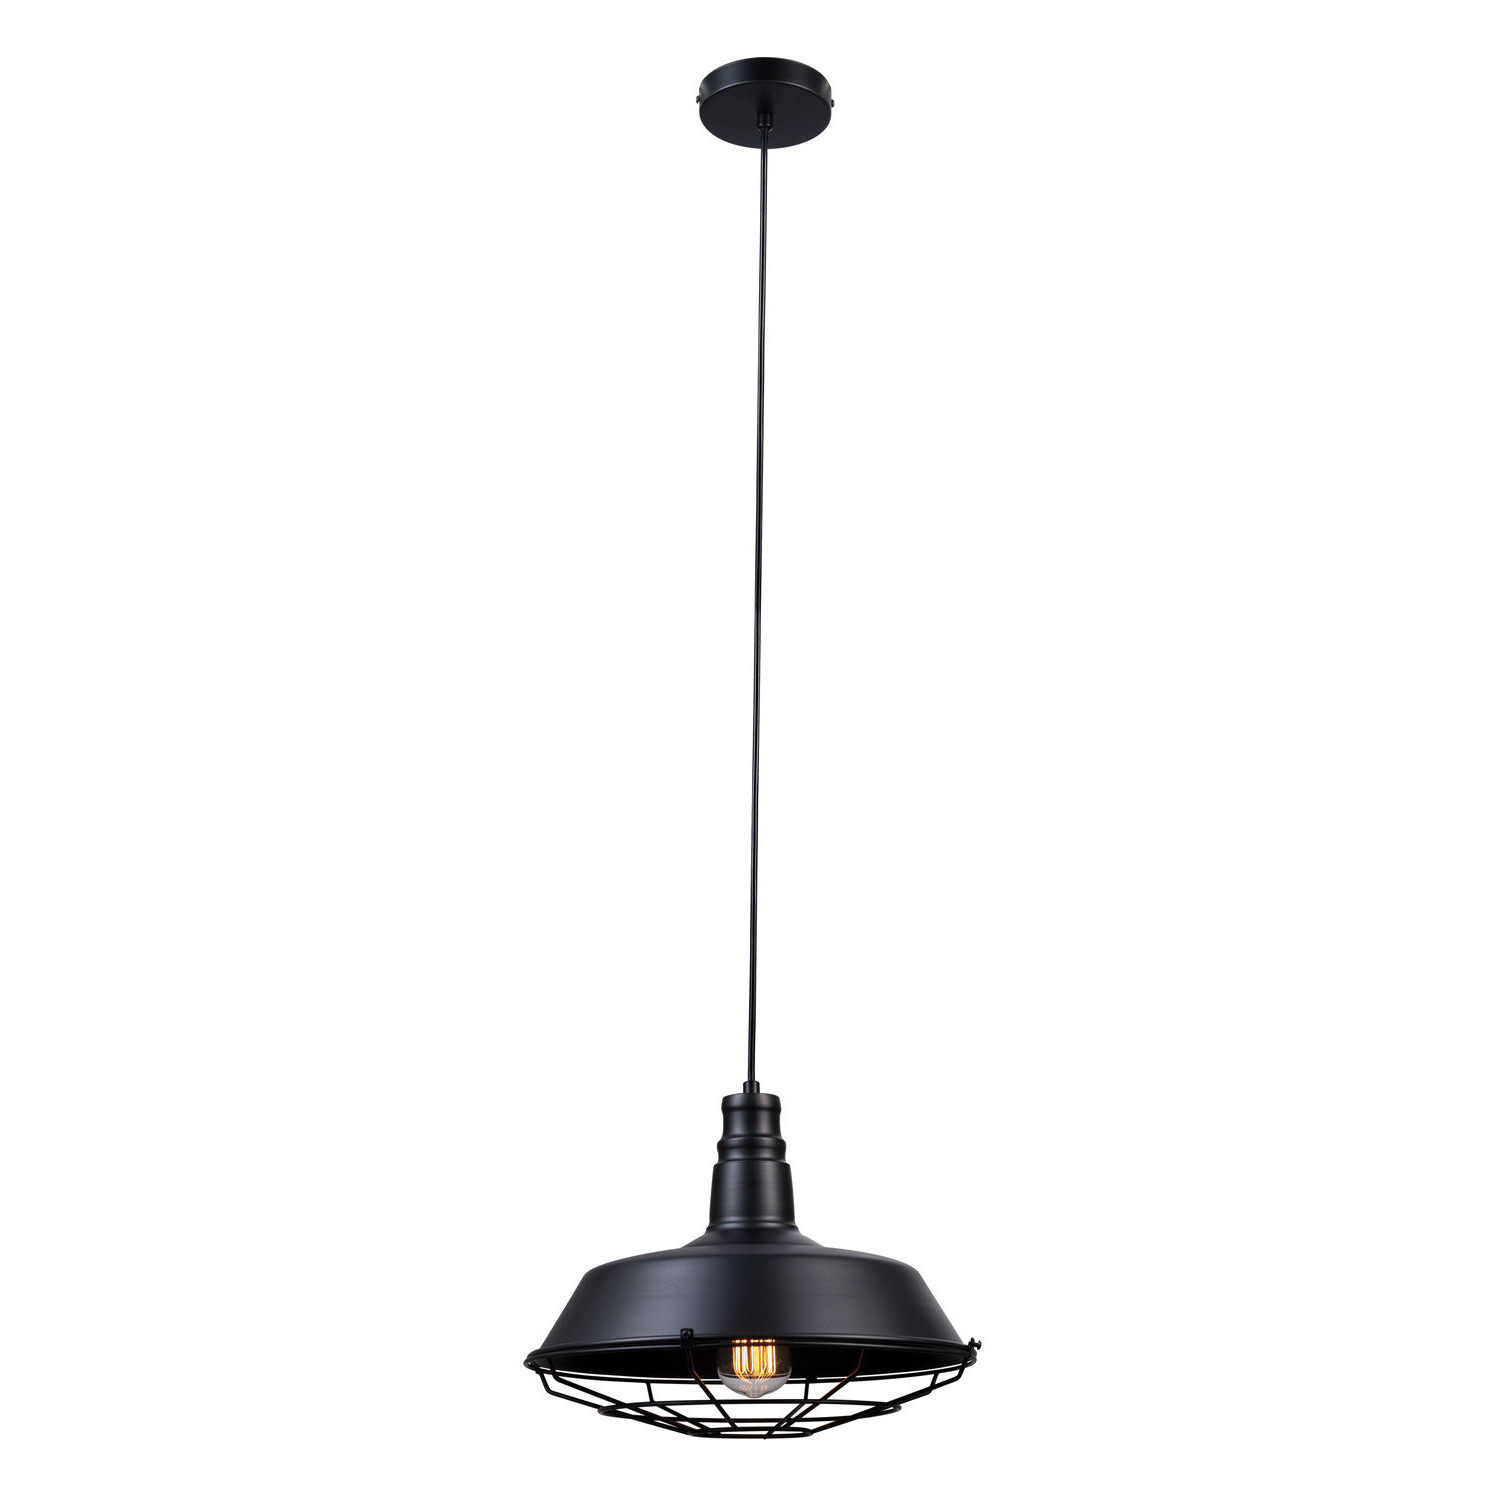 2020 Demi 1 Light Globe Pendants With Massey 1 Light Inverted Dome Pendant (View 13 of 25)